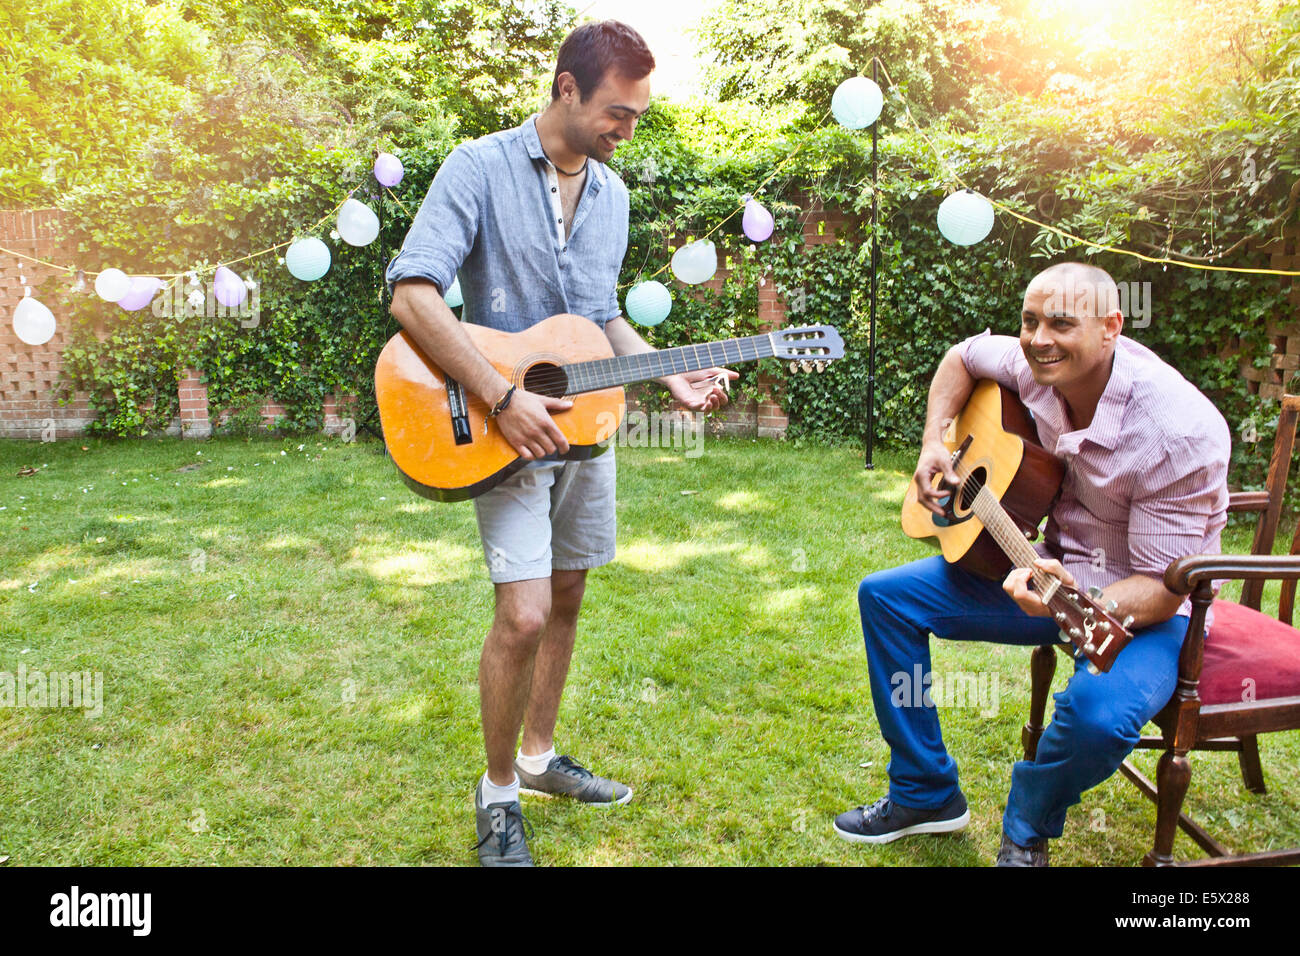 Two male friends playing acoustic guitar in garden - Stock Image